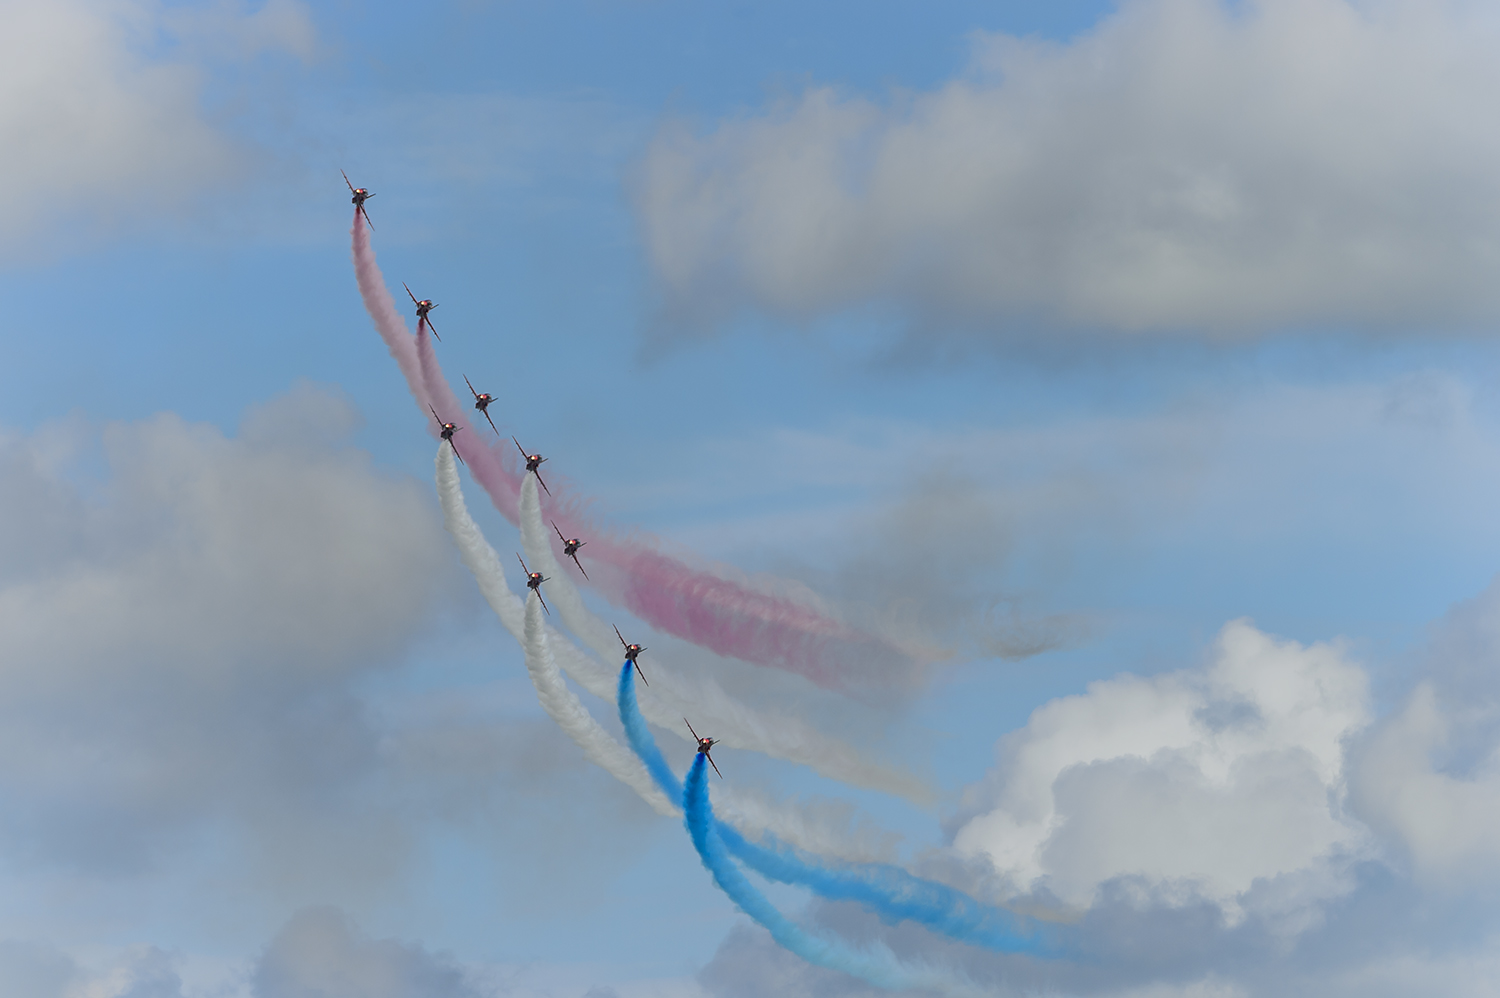 Red-Arrows-RAF-Aerobatic-Team-Eastbourne-RKing-14-018521-vv